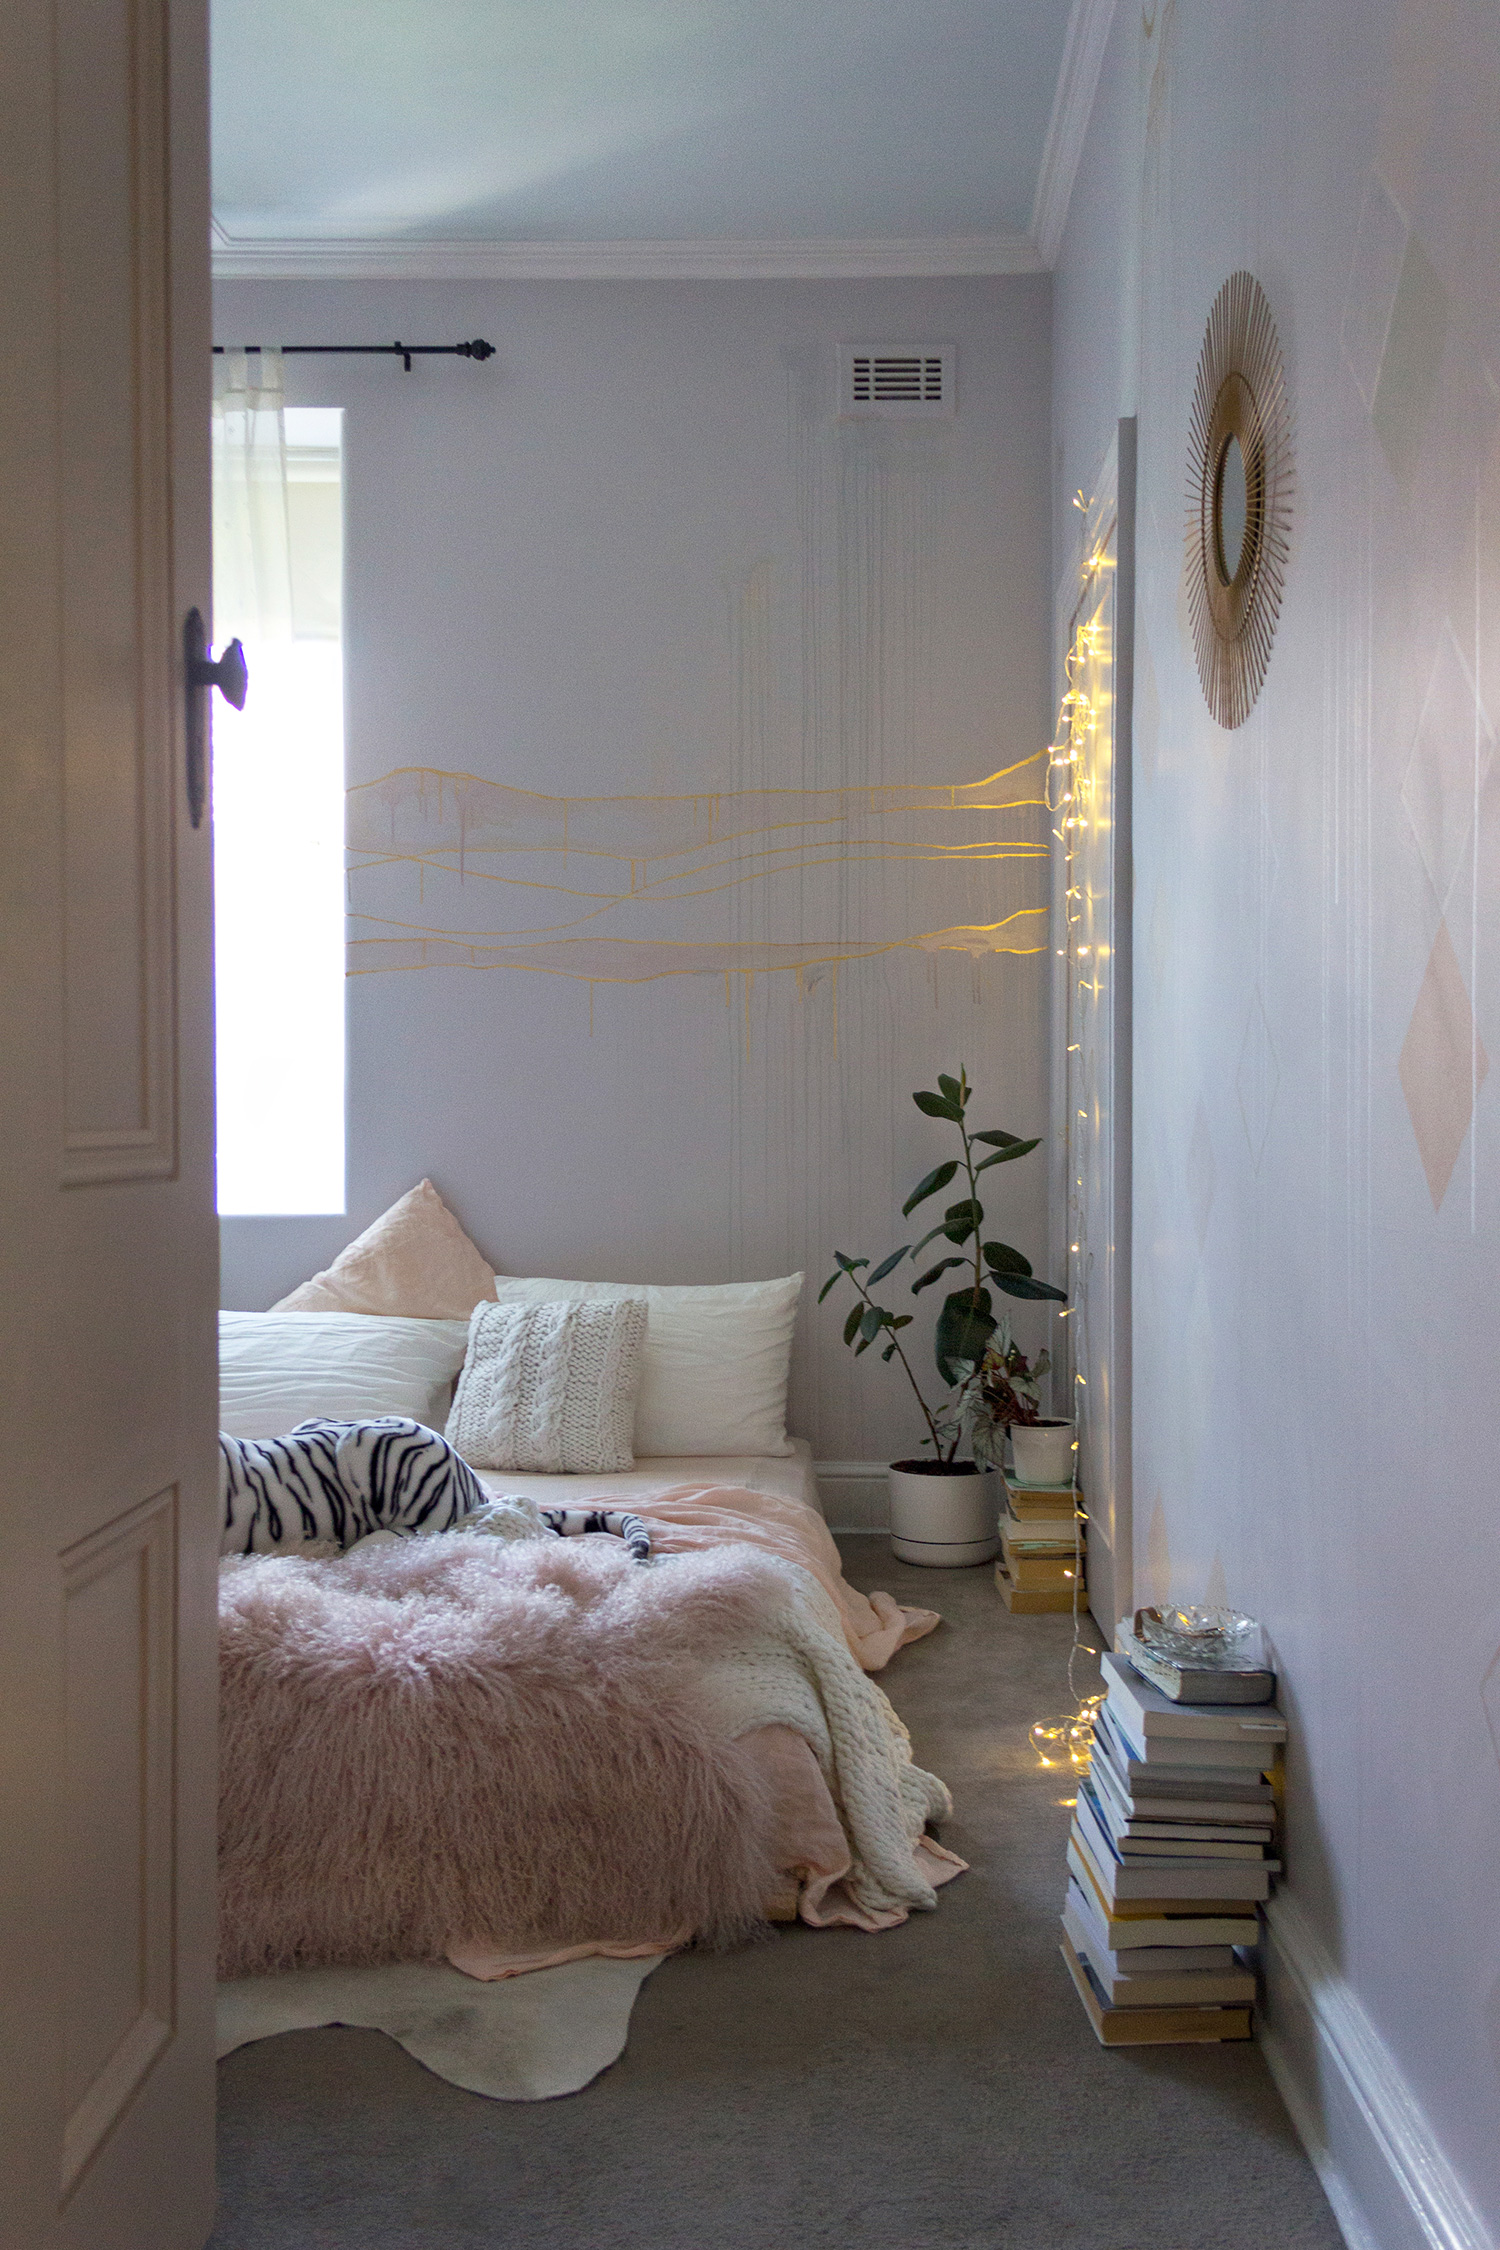 Gold leaf feature wall in cosy bedroom, the bed is made with peach linen sheets and a Mongolian sheepskin throw.